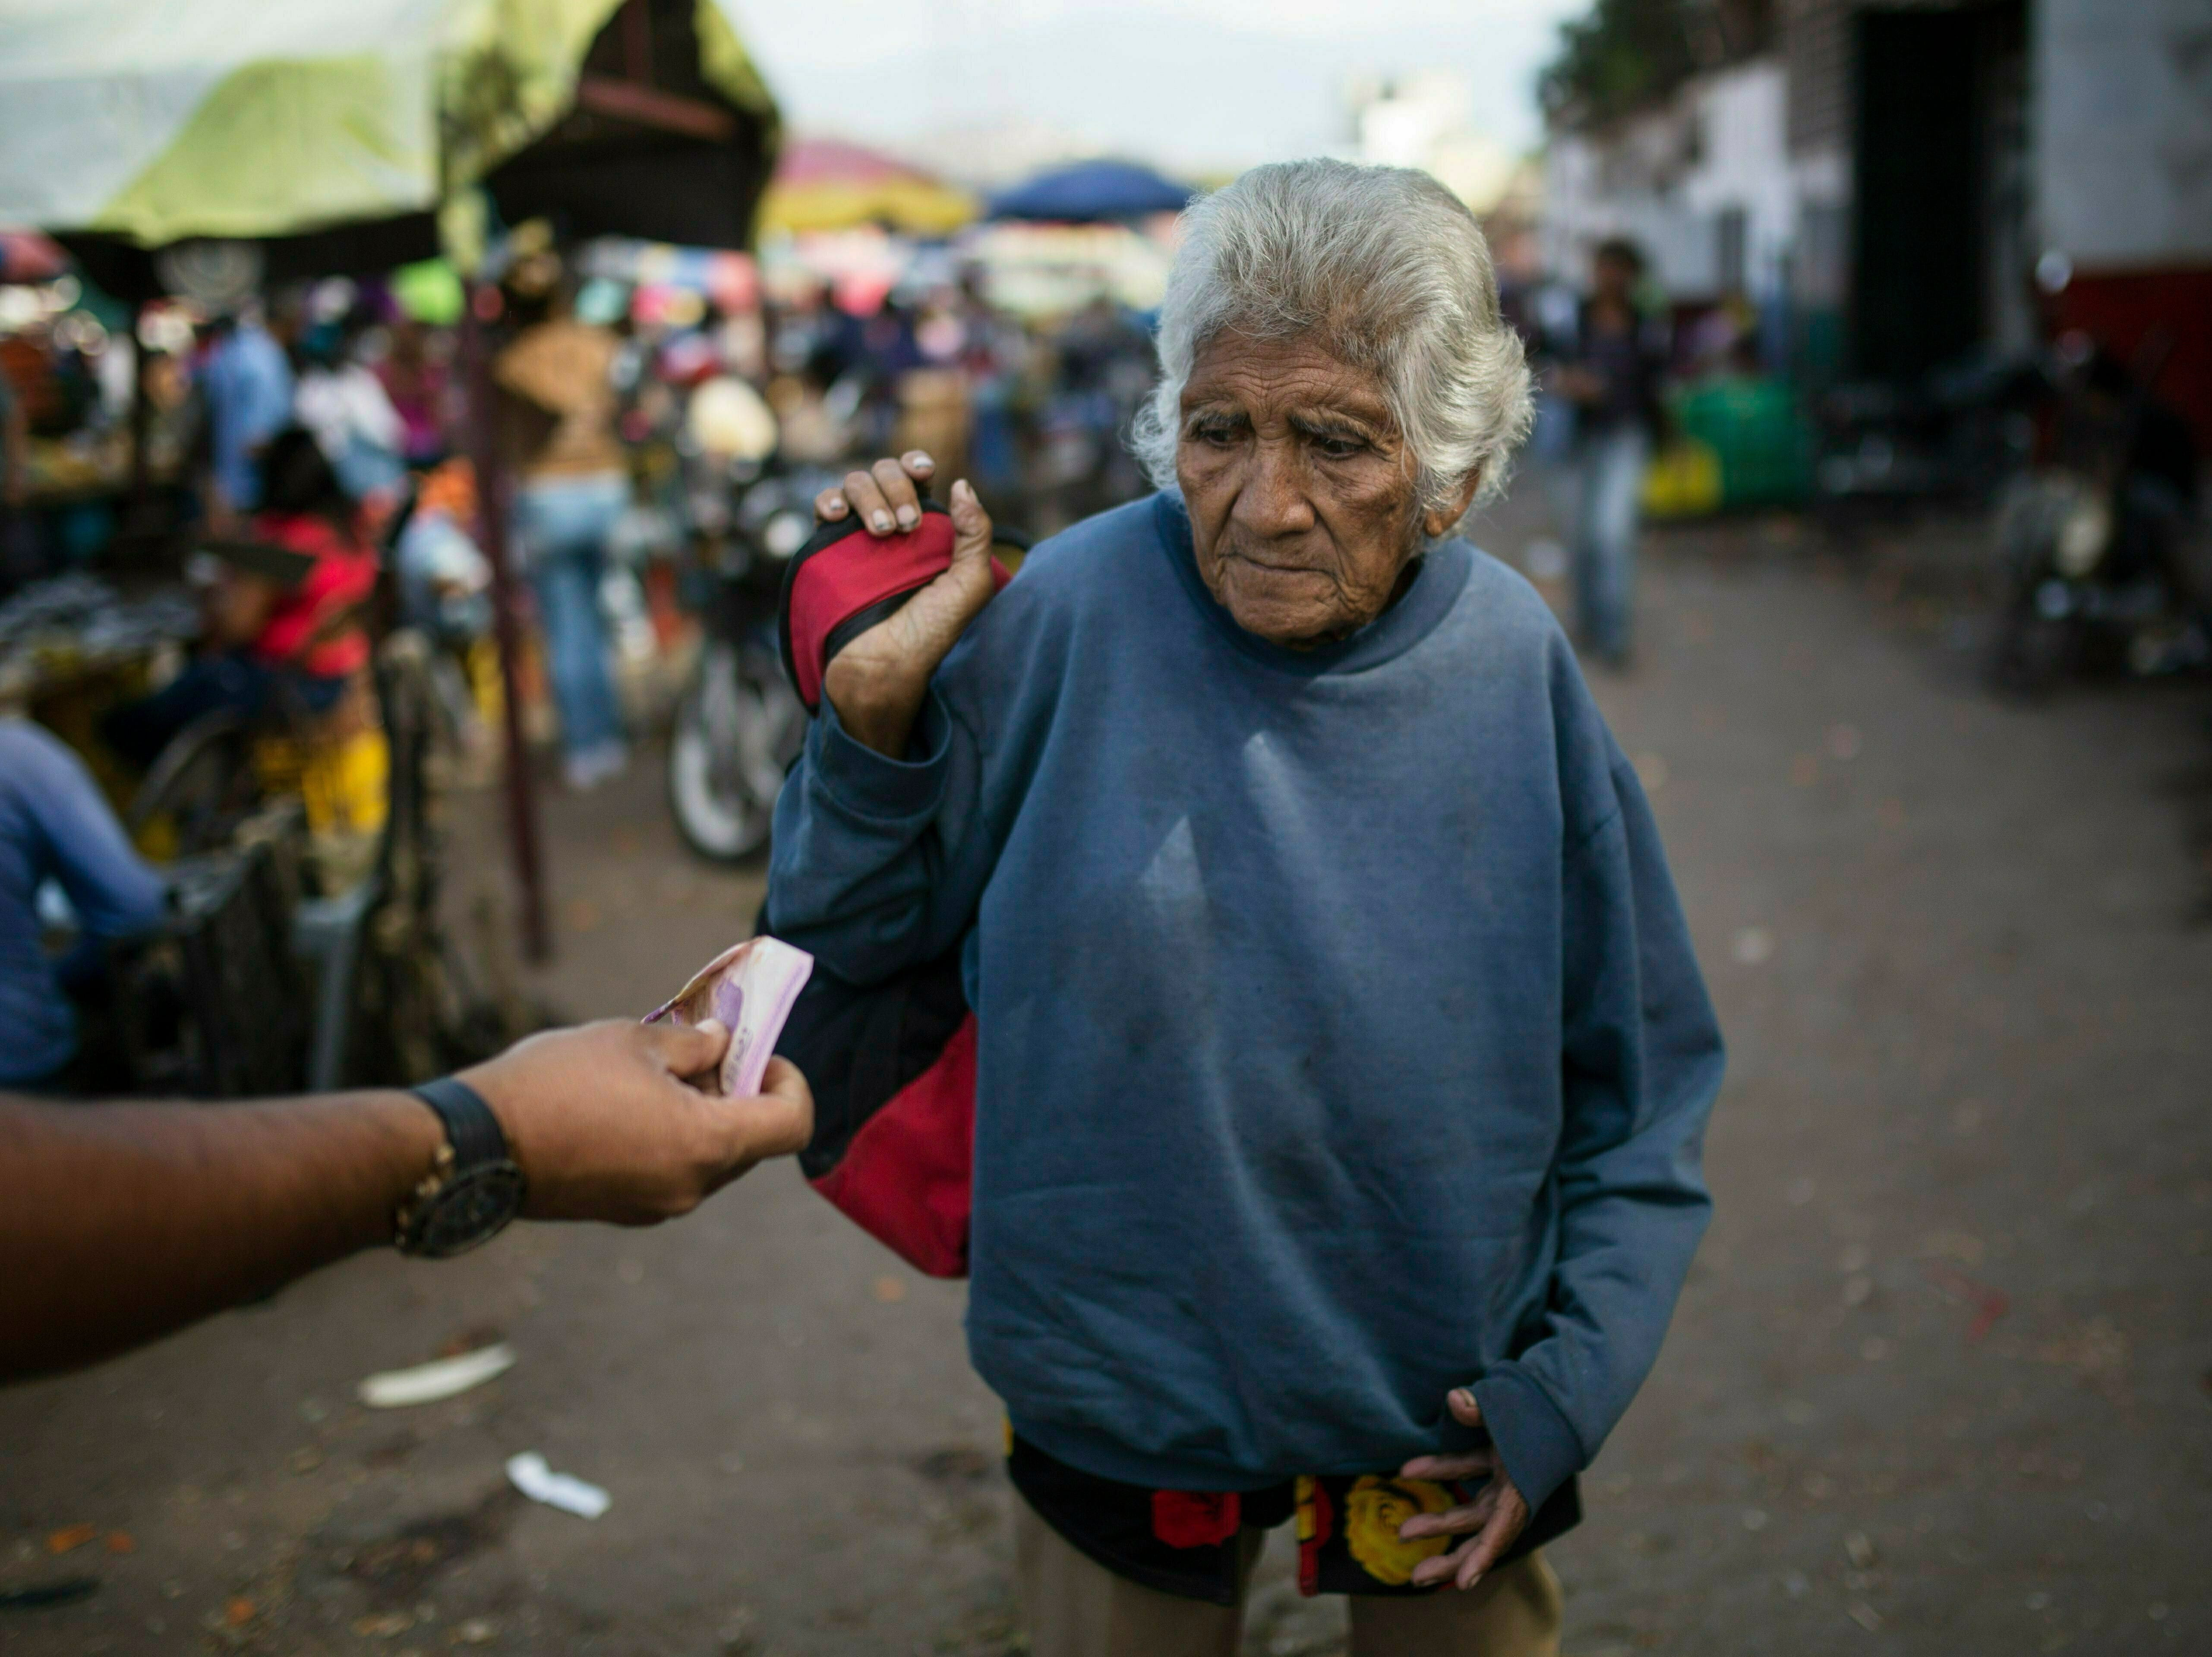 An elderly woman is offered cash as she begs at a wholesale food market in Caracas, Venezuela, Monday, Jan. 28, 2019. Economists agree that the longer the standoff between the U.S.-backed opposition leader Juan Guaido and President Nicolas Maduro drags on, the more regular Venezuelans are likely to suffer.